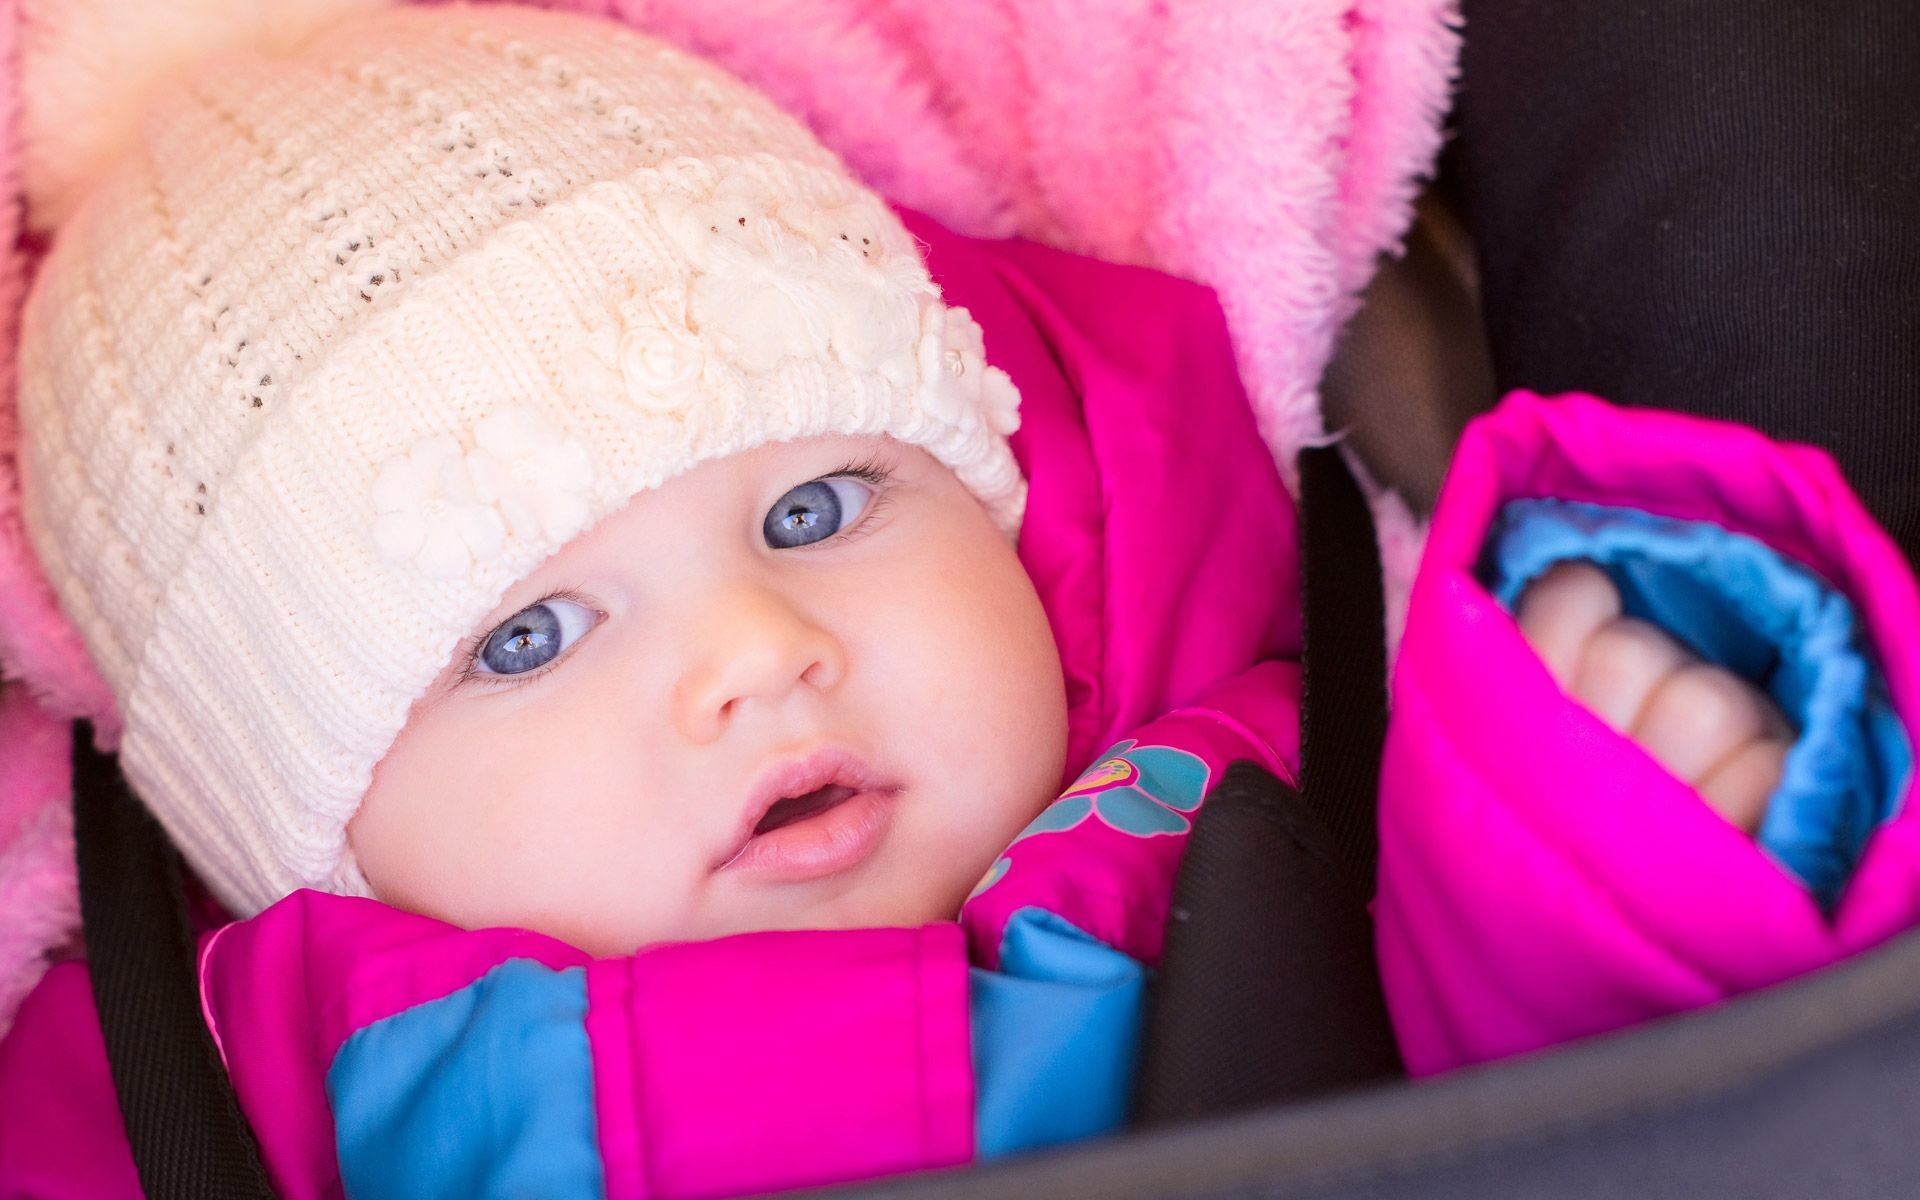 Beautiful babies wallpapers 2018 66 pictures - Beautiful baby wallpapers ...